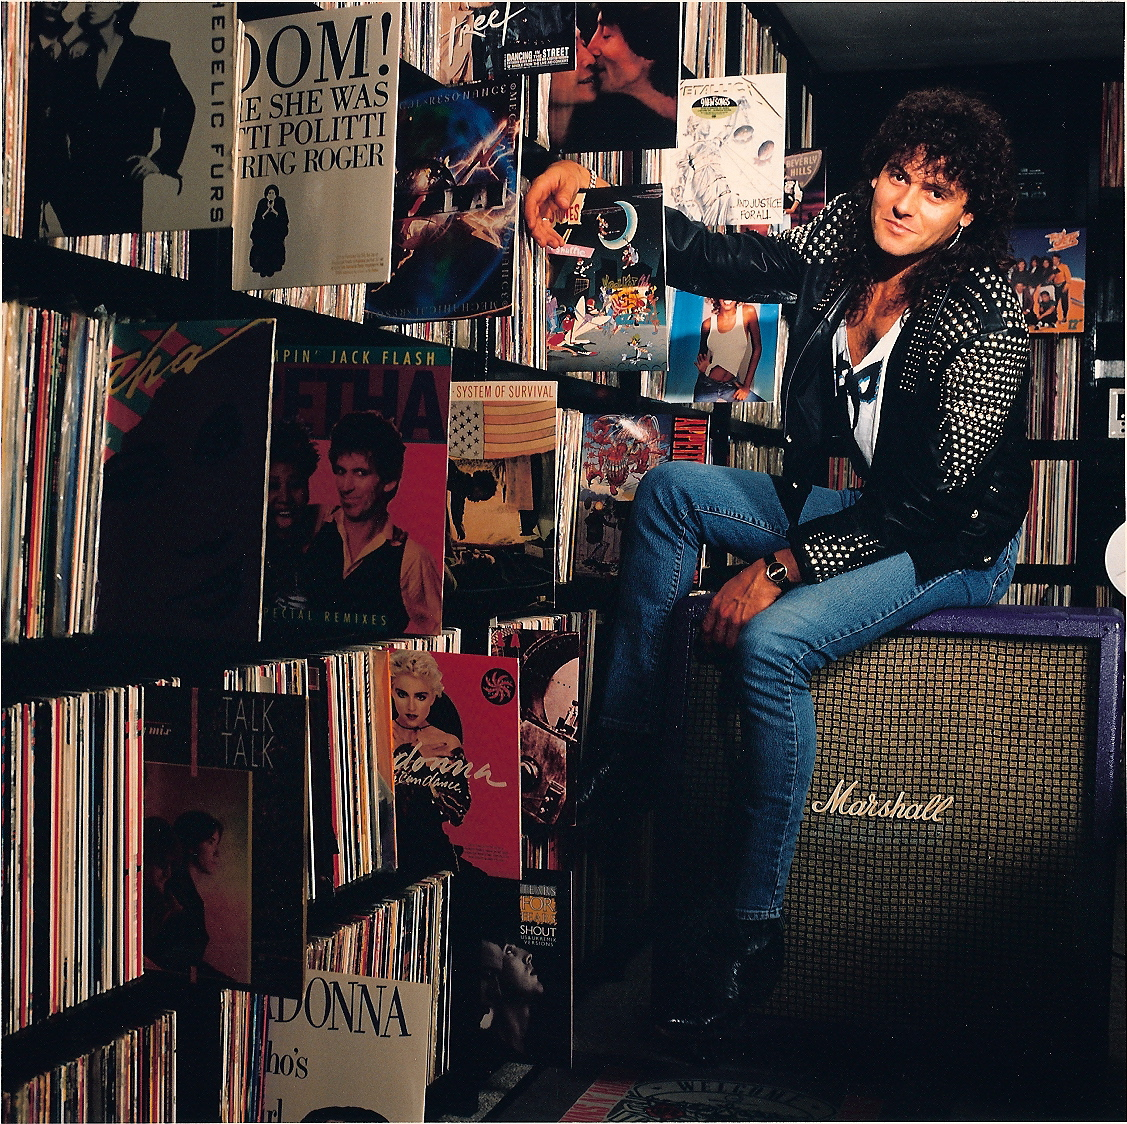 Steve with record collection, NY